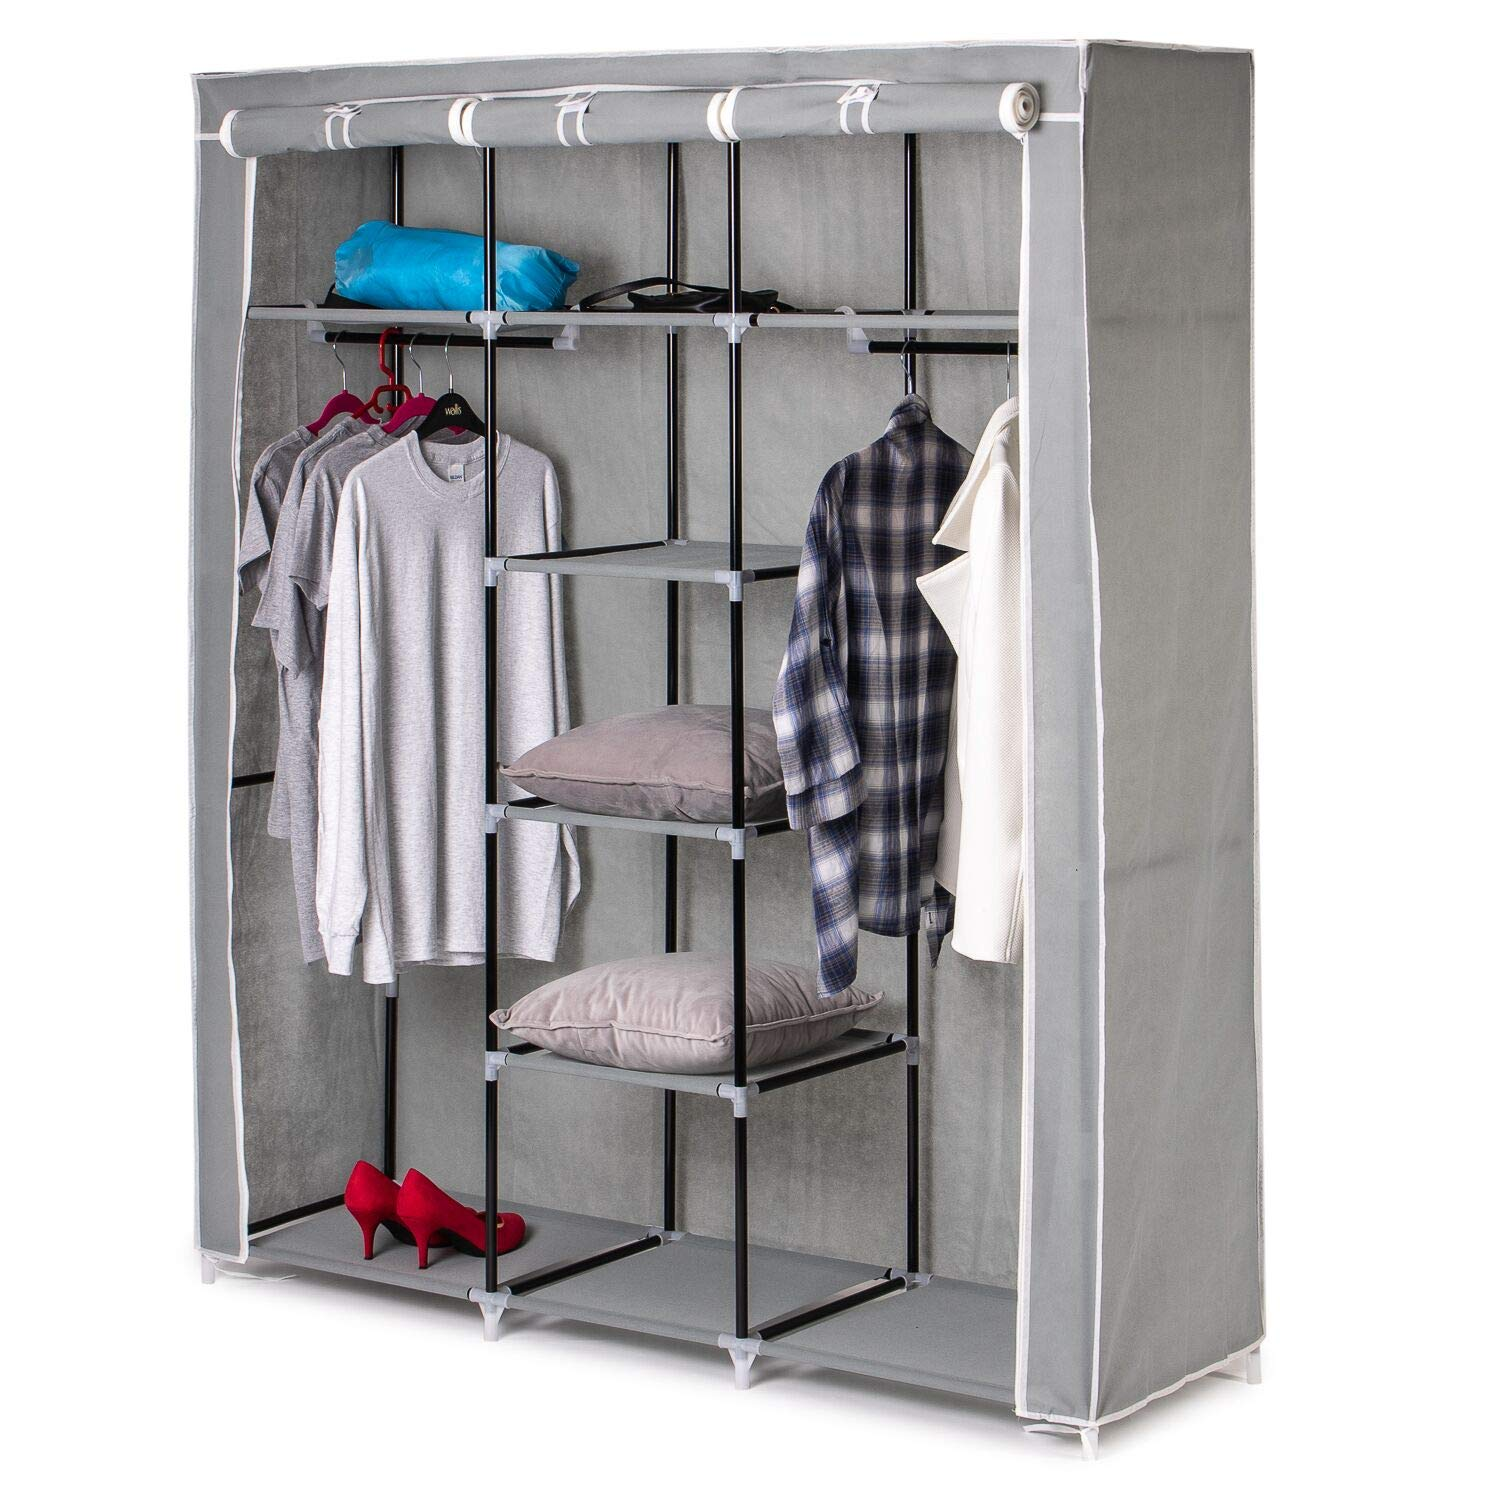 Home Treats Large Grey Canvas Wardrobe Hanging Rail Clothes Closet Storage Shelves Organiser For Kids Adults Bedroom 171 X 146 X 46 Cm Buy Online In El Salvador At Desertcart